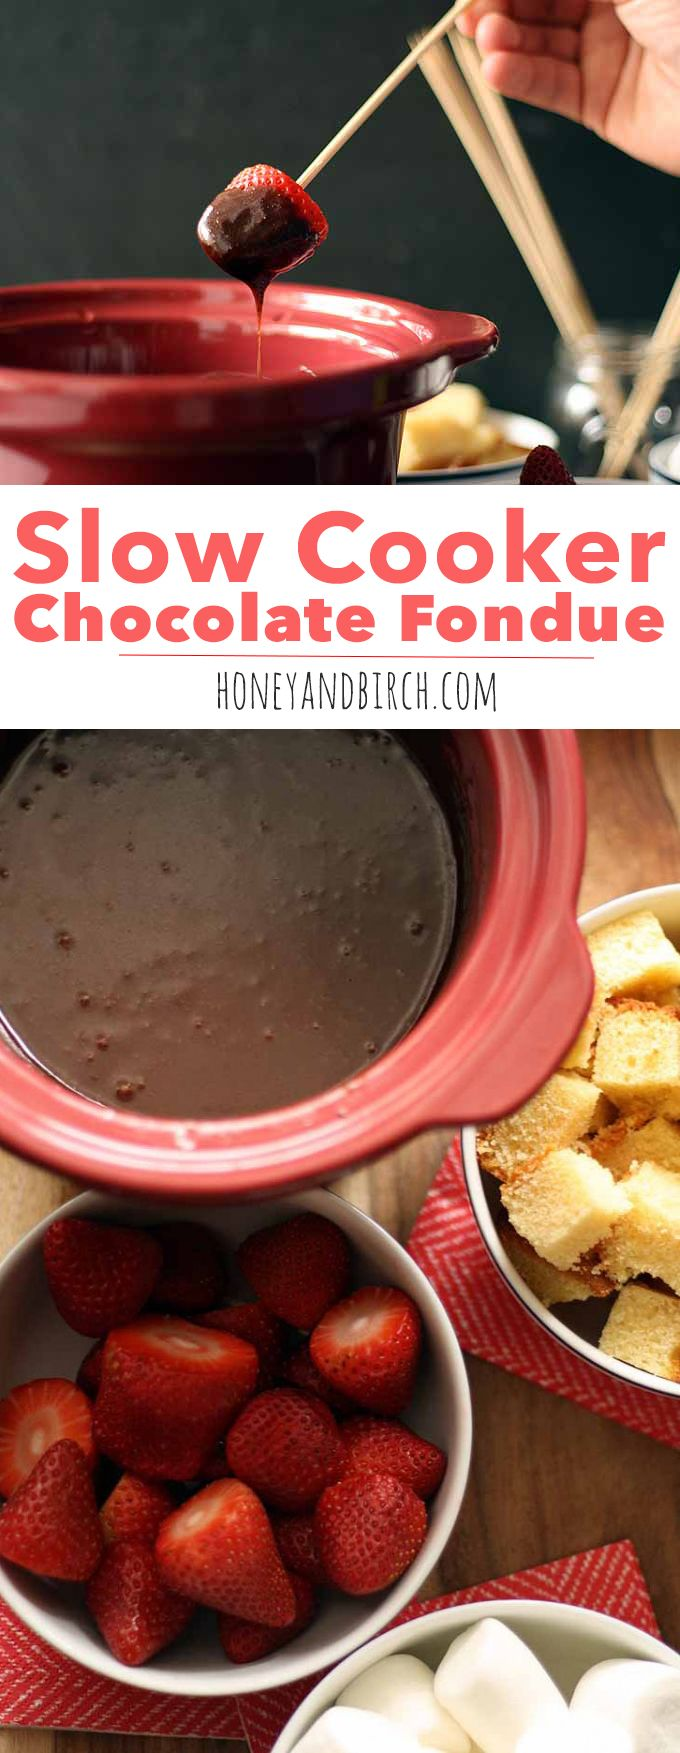 Slow Cooker Chocolate Fondue - the perfect easy recipe for parties and special occasions like Valentine's Day. Only 3 ingredients! | www.honeyandbirch.com